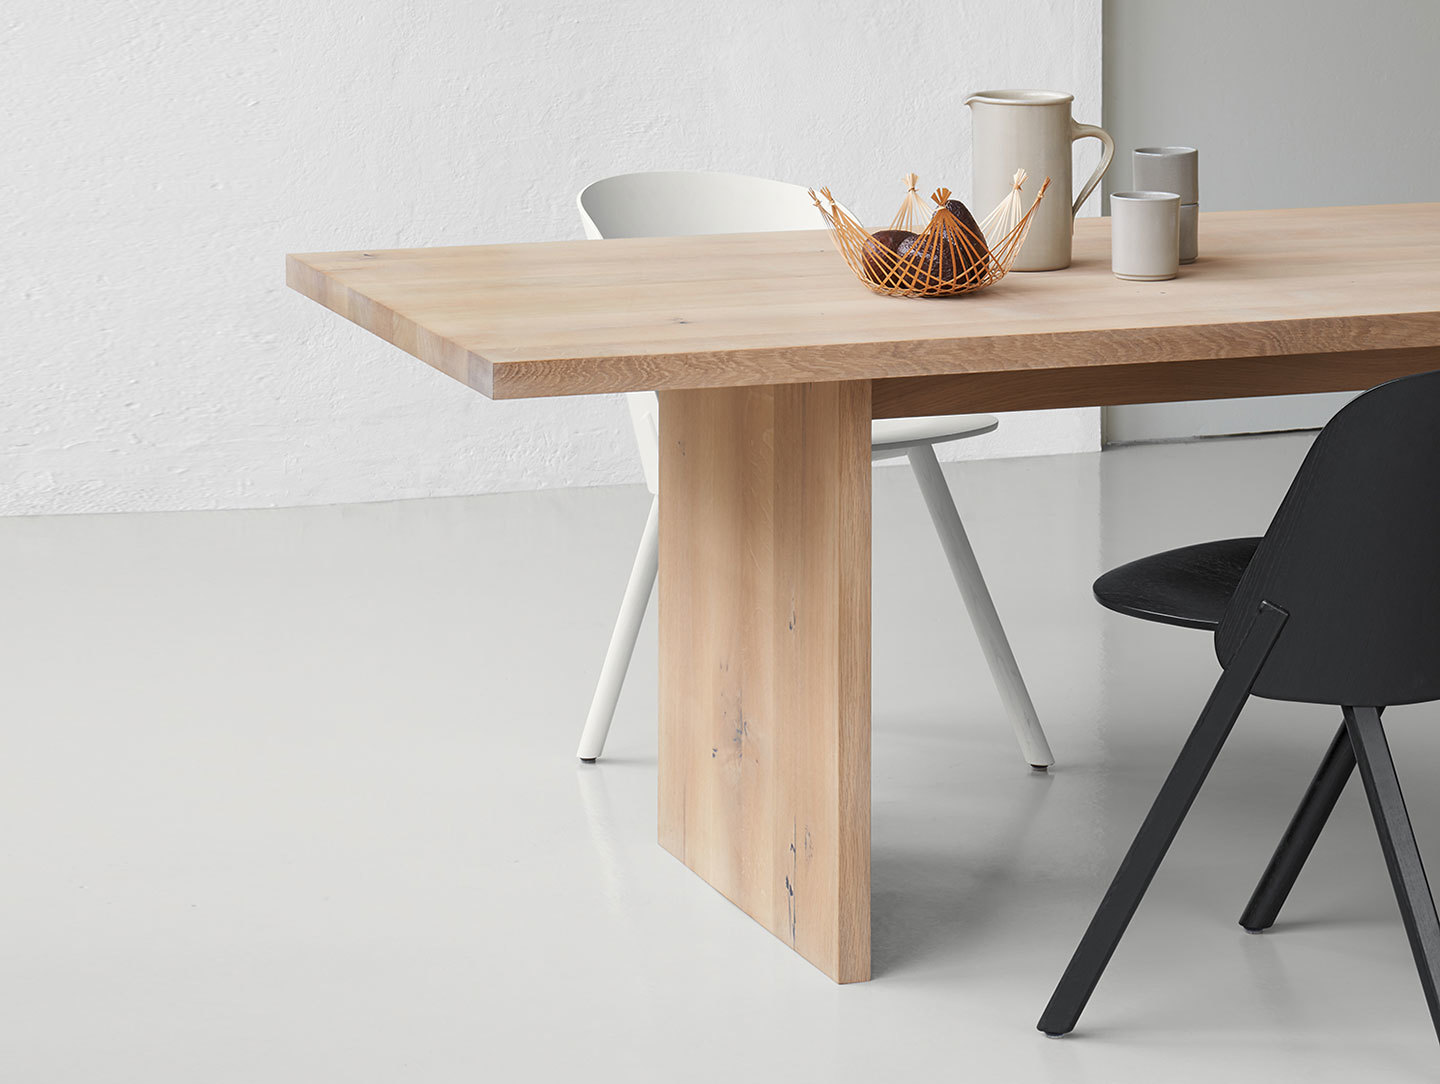 E15 Ashida Table Detail Whitened Oak